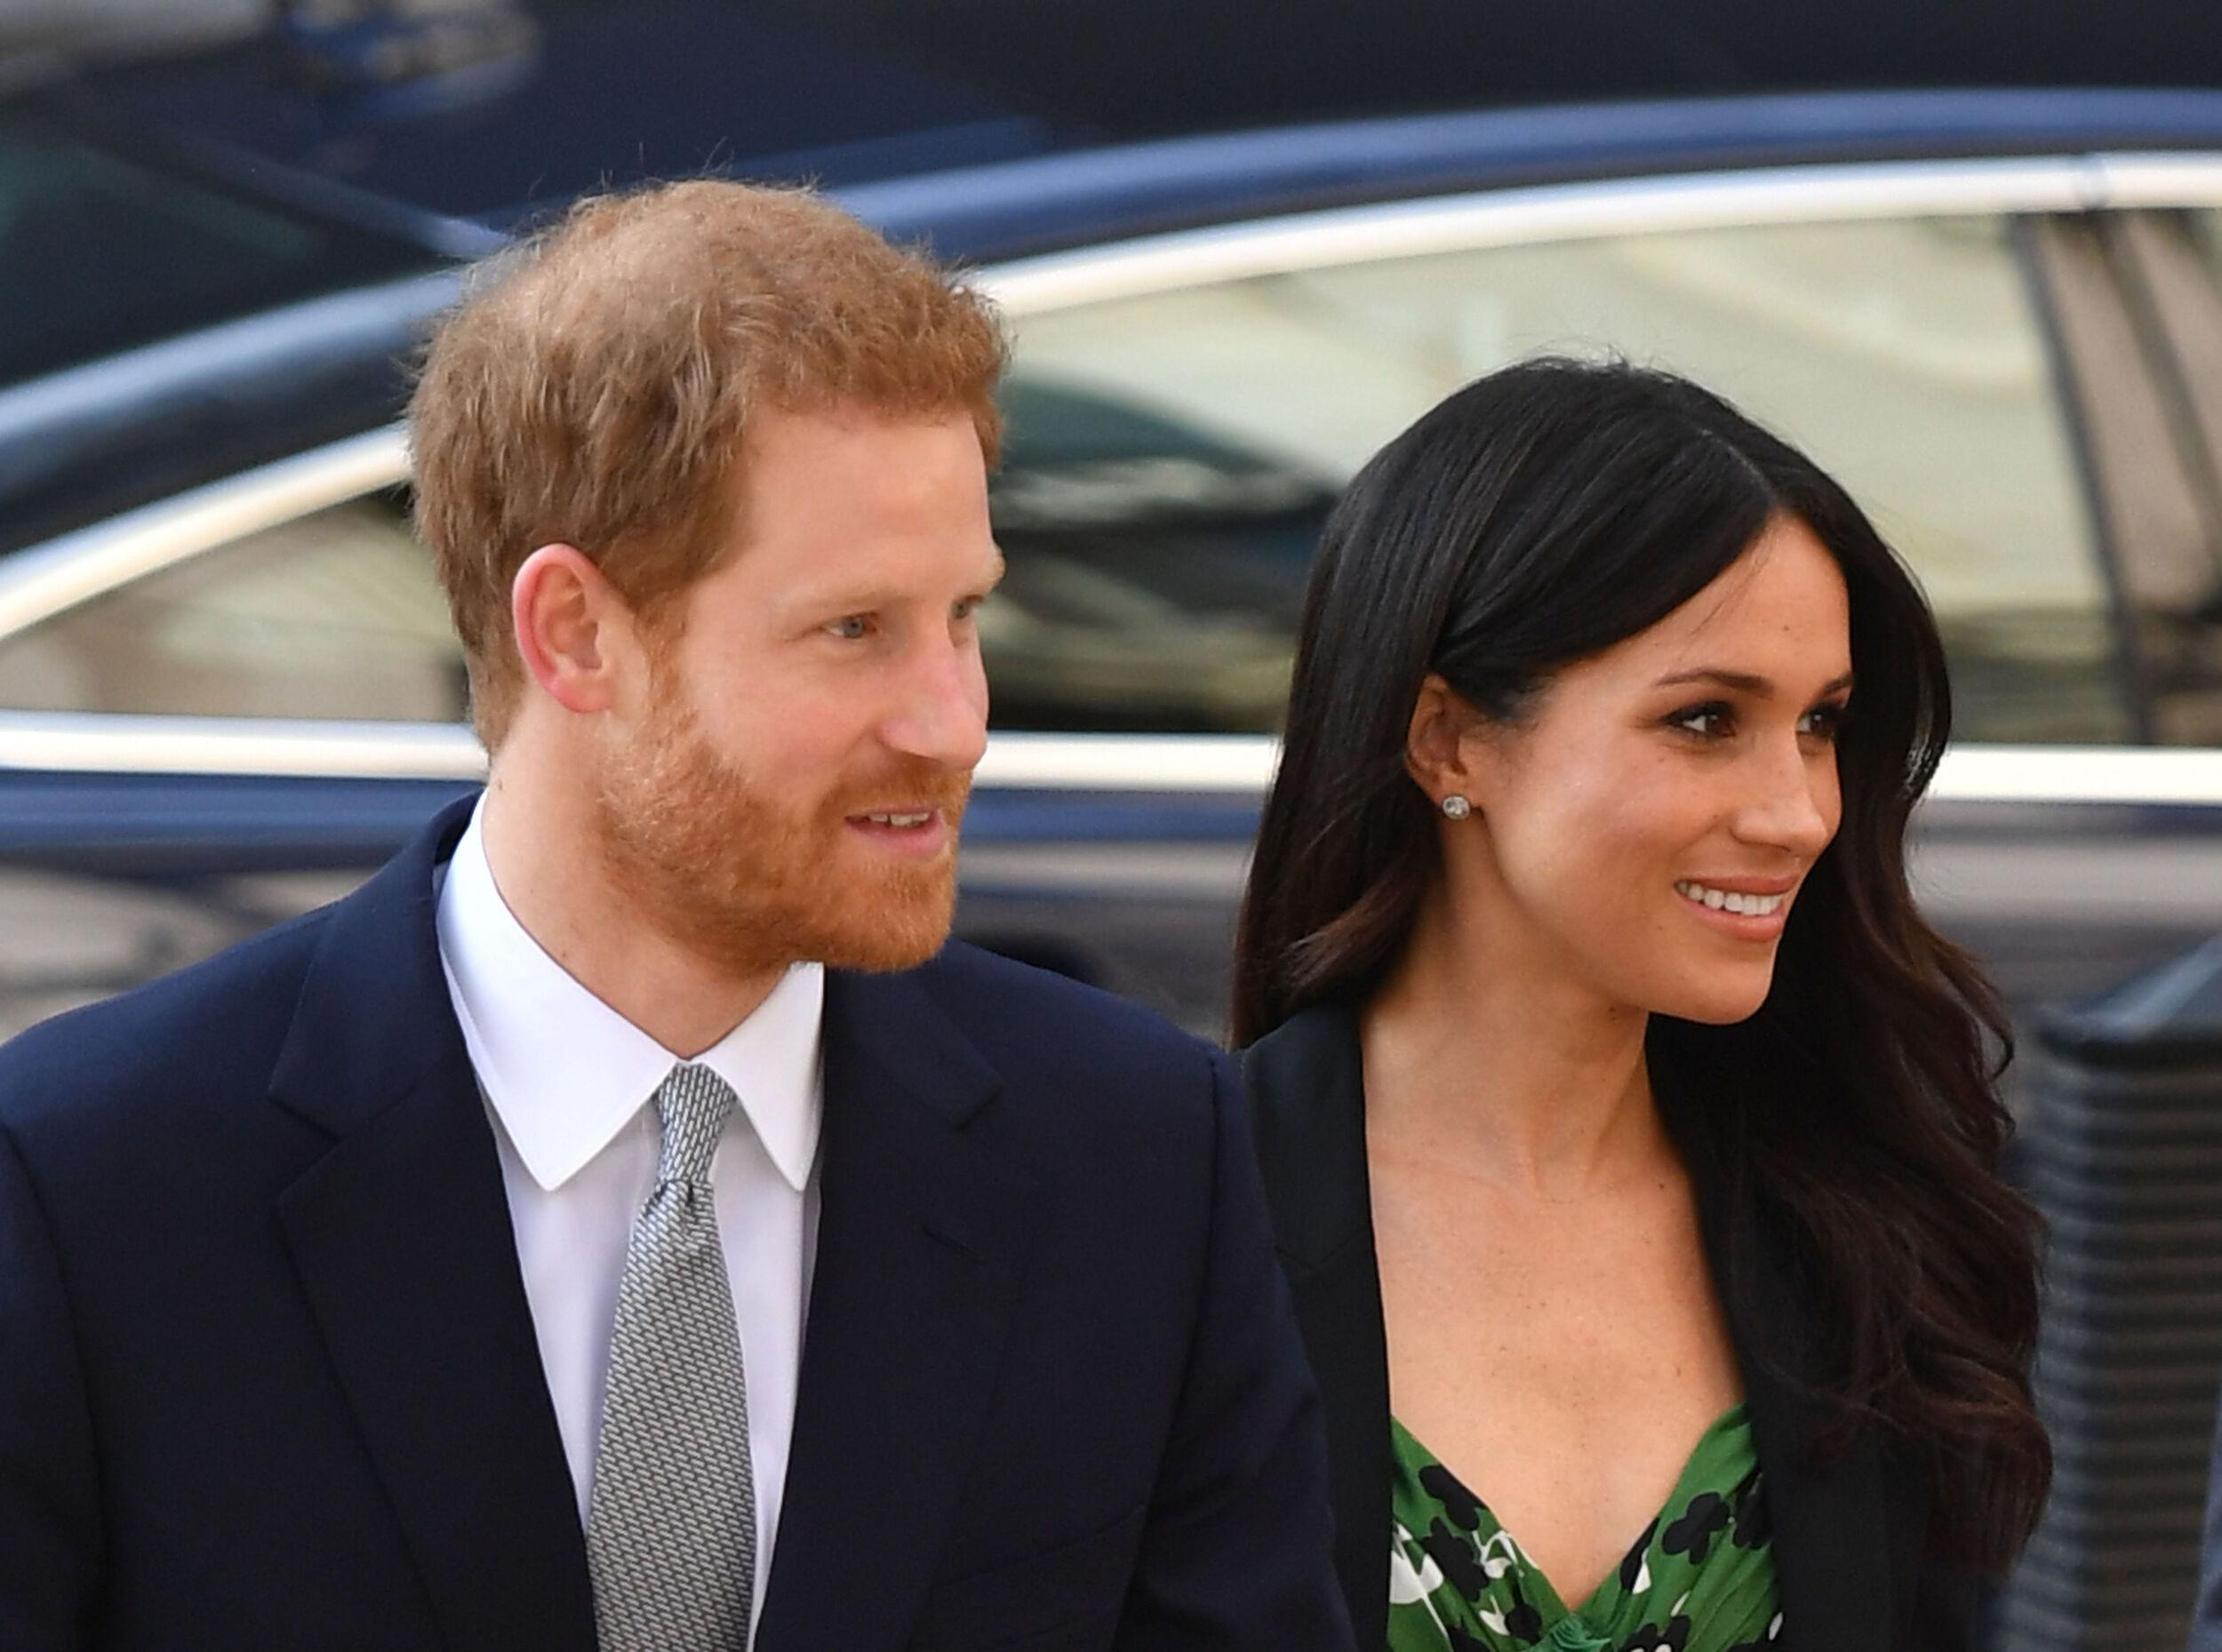 Prince Harry and Meghan Markle arrive at the Australian High Commission in London to attend a reception celebrating the forthcoming Invictus Games Sydney 2018.